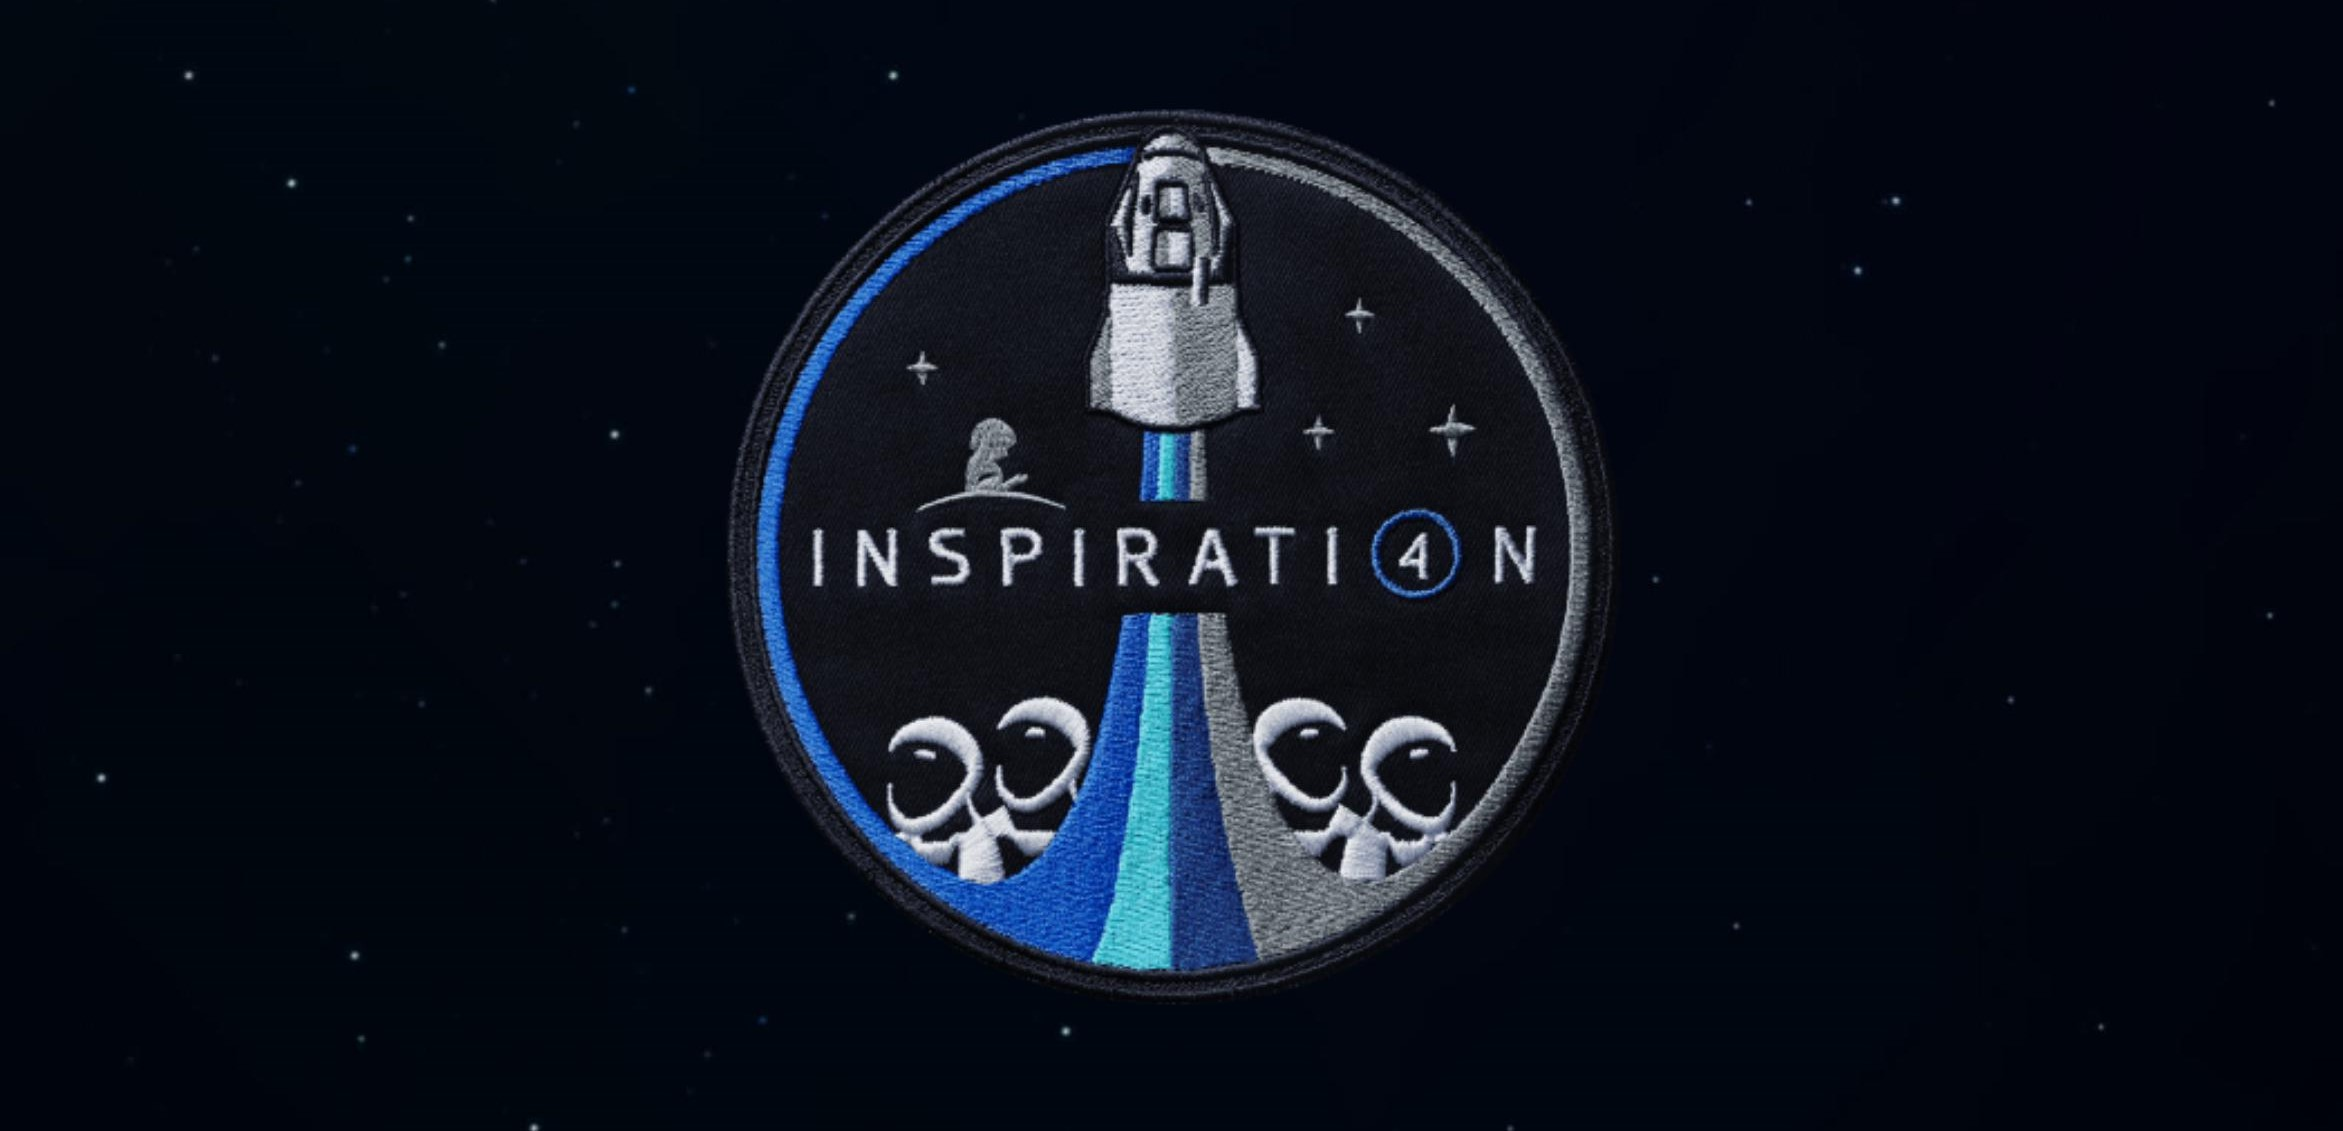 Inspiration4 mission patch